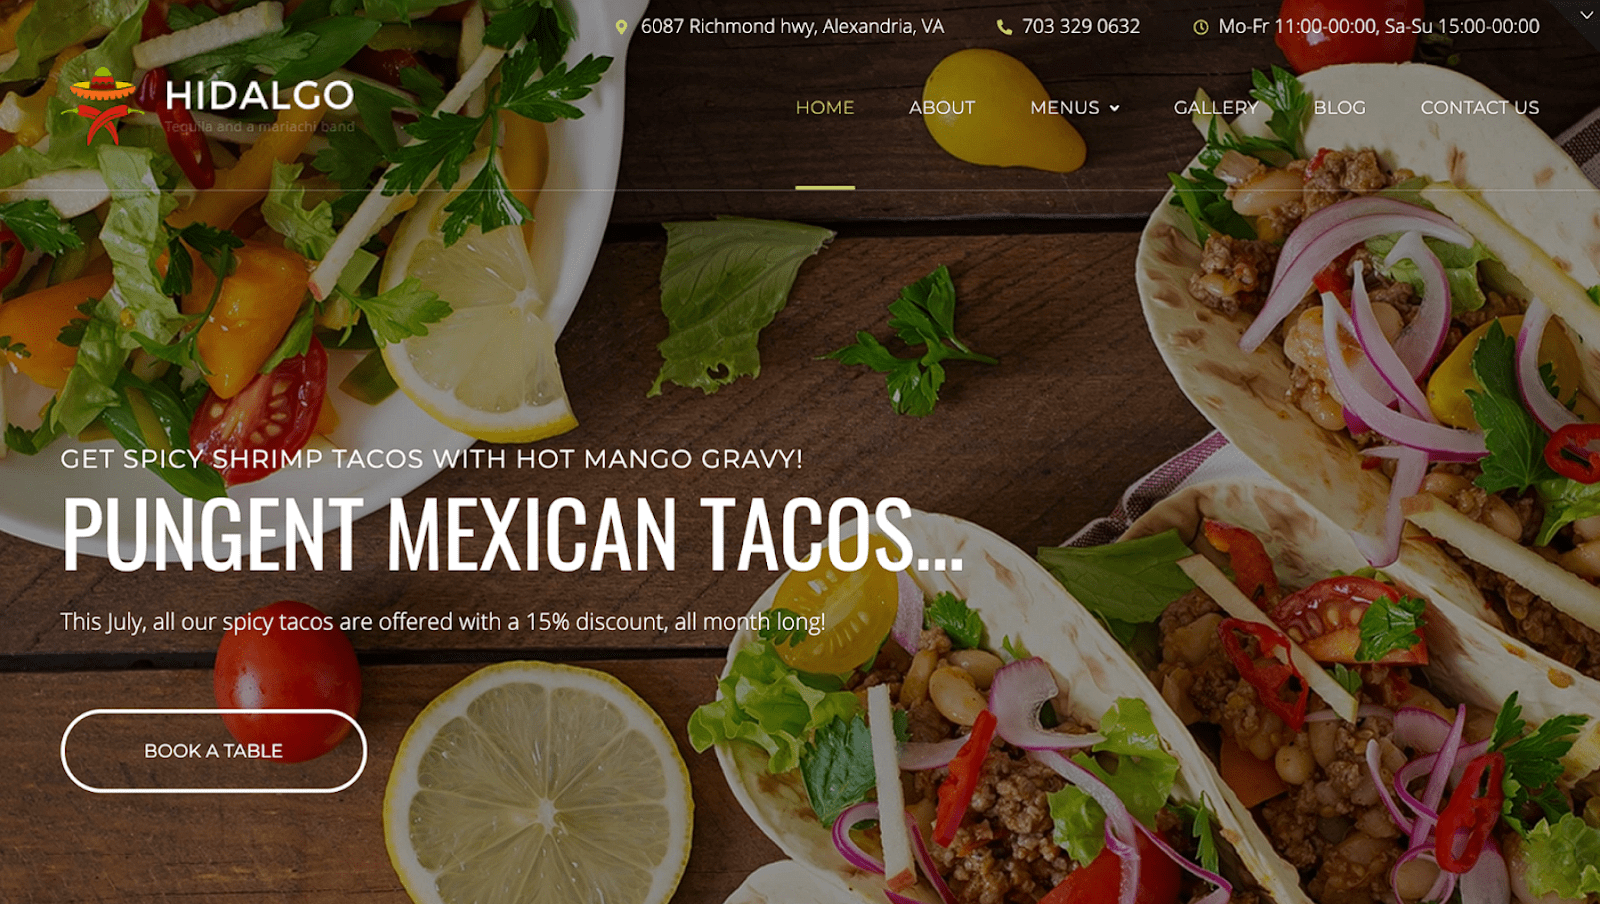 copy-of-the-6-best-restaurant-website-templates-3.png